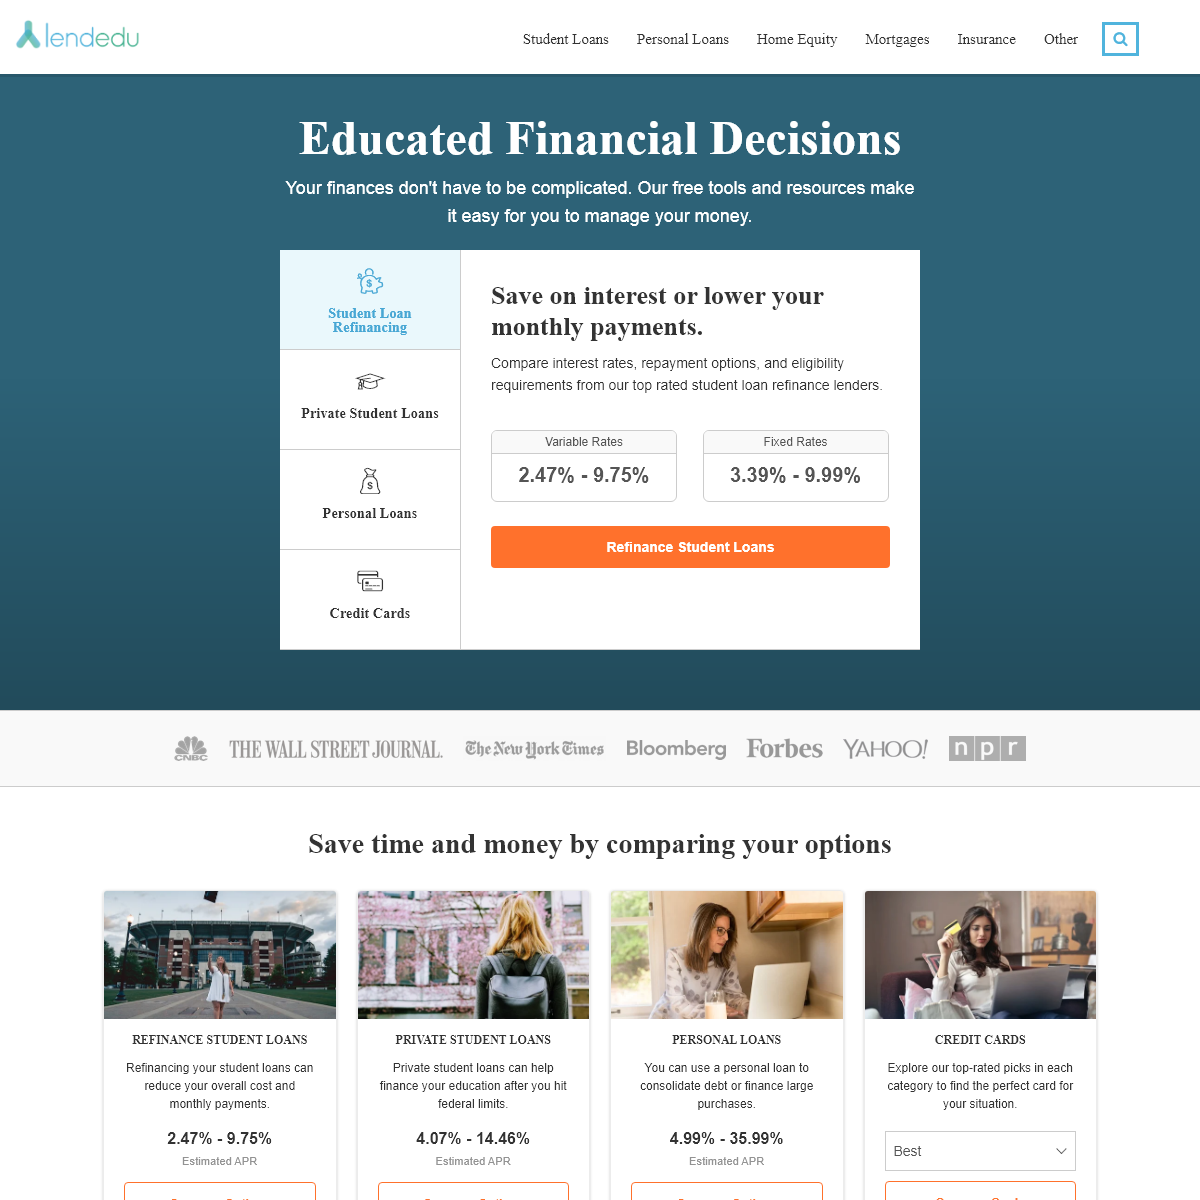 LendEDU - Educated Financial Decisions